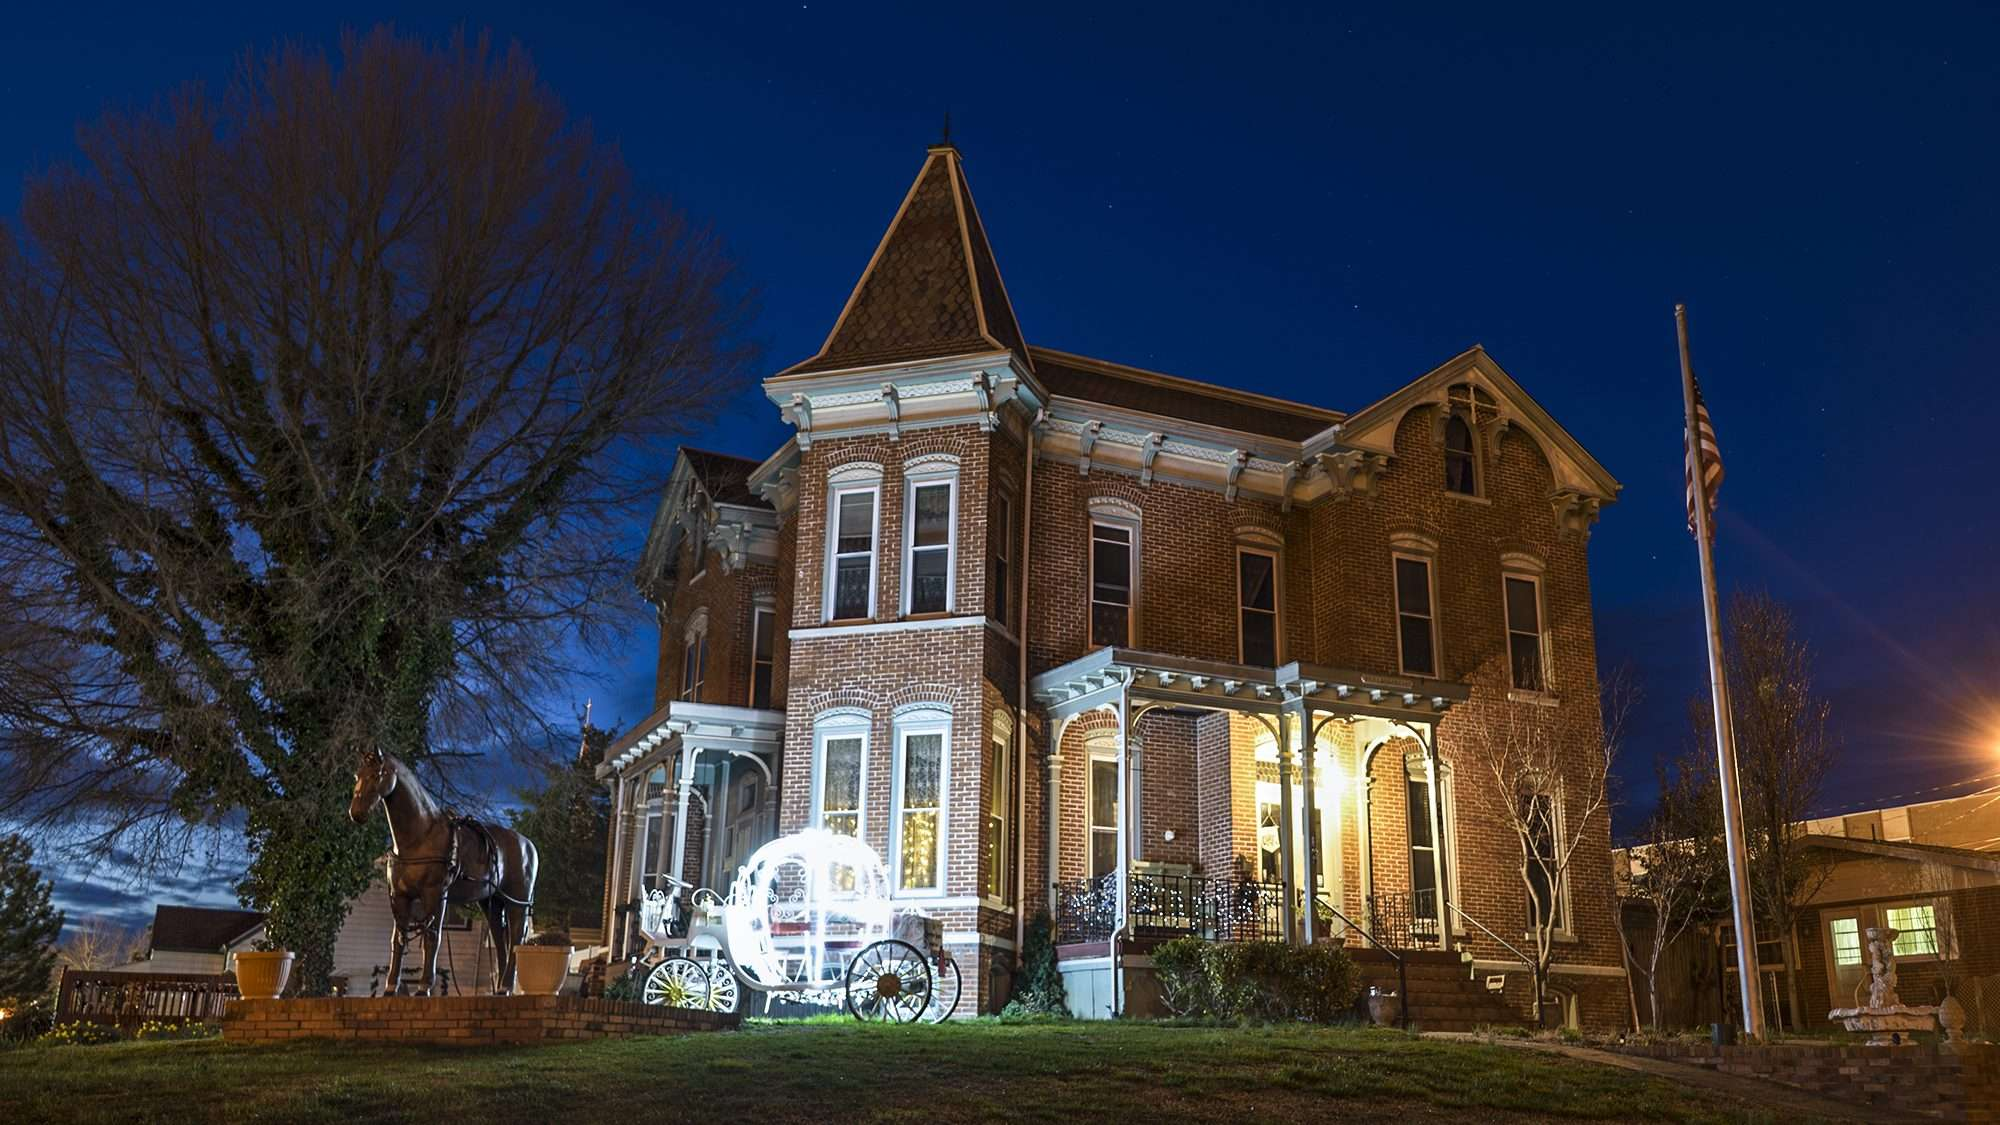 03.07.2018 - Riverview Mansion Bed and Breakfast with carriage lighted, Metropolis, IL/photonews247.com